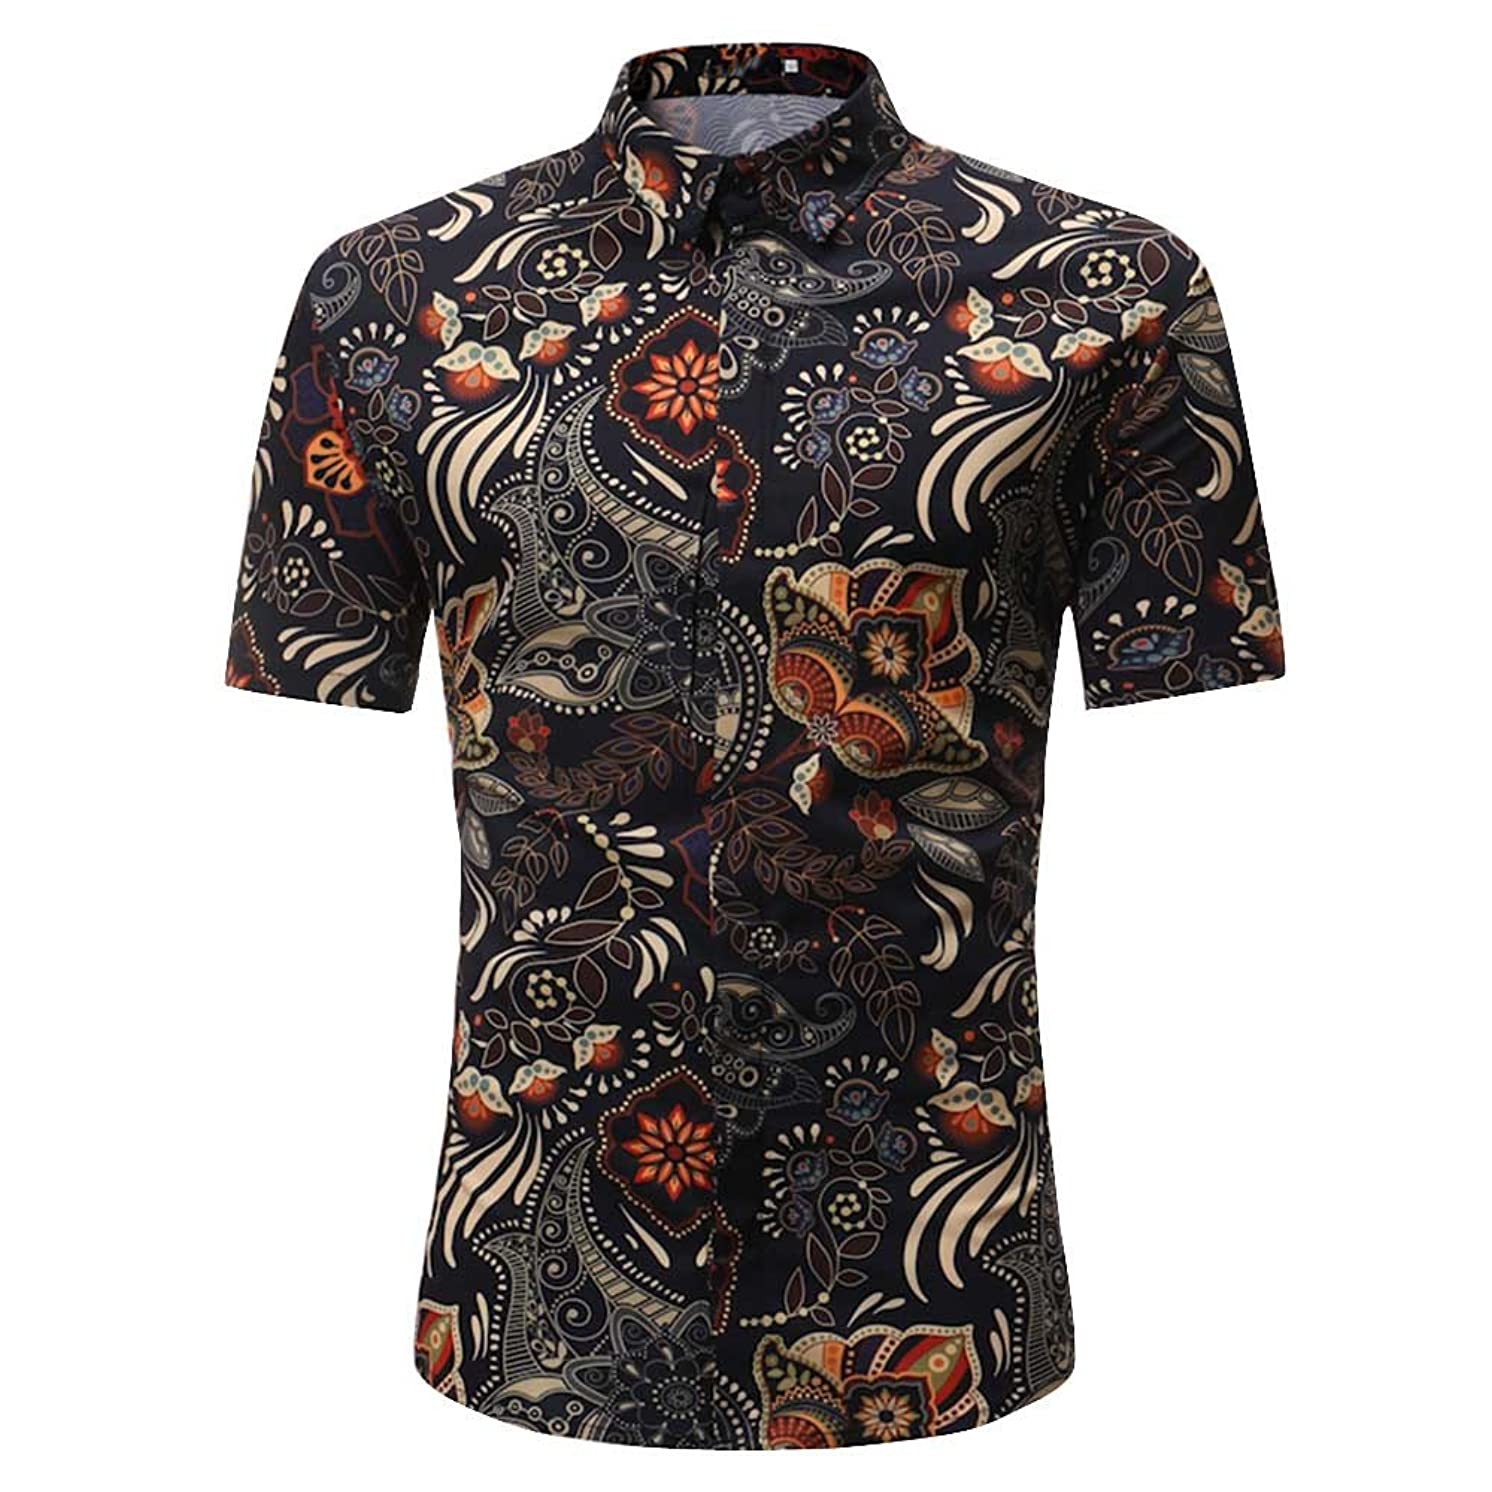 Lelili Men Vintage Printed Buttons Turn Down Collar T-Shirt Plus Size Slim Fit Short Sleeve Tops Blouse Summer Casual Shirt